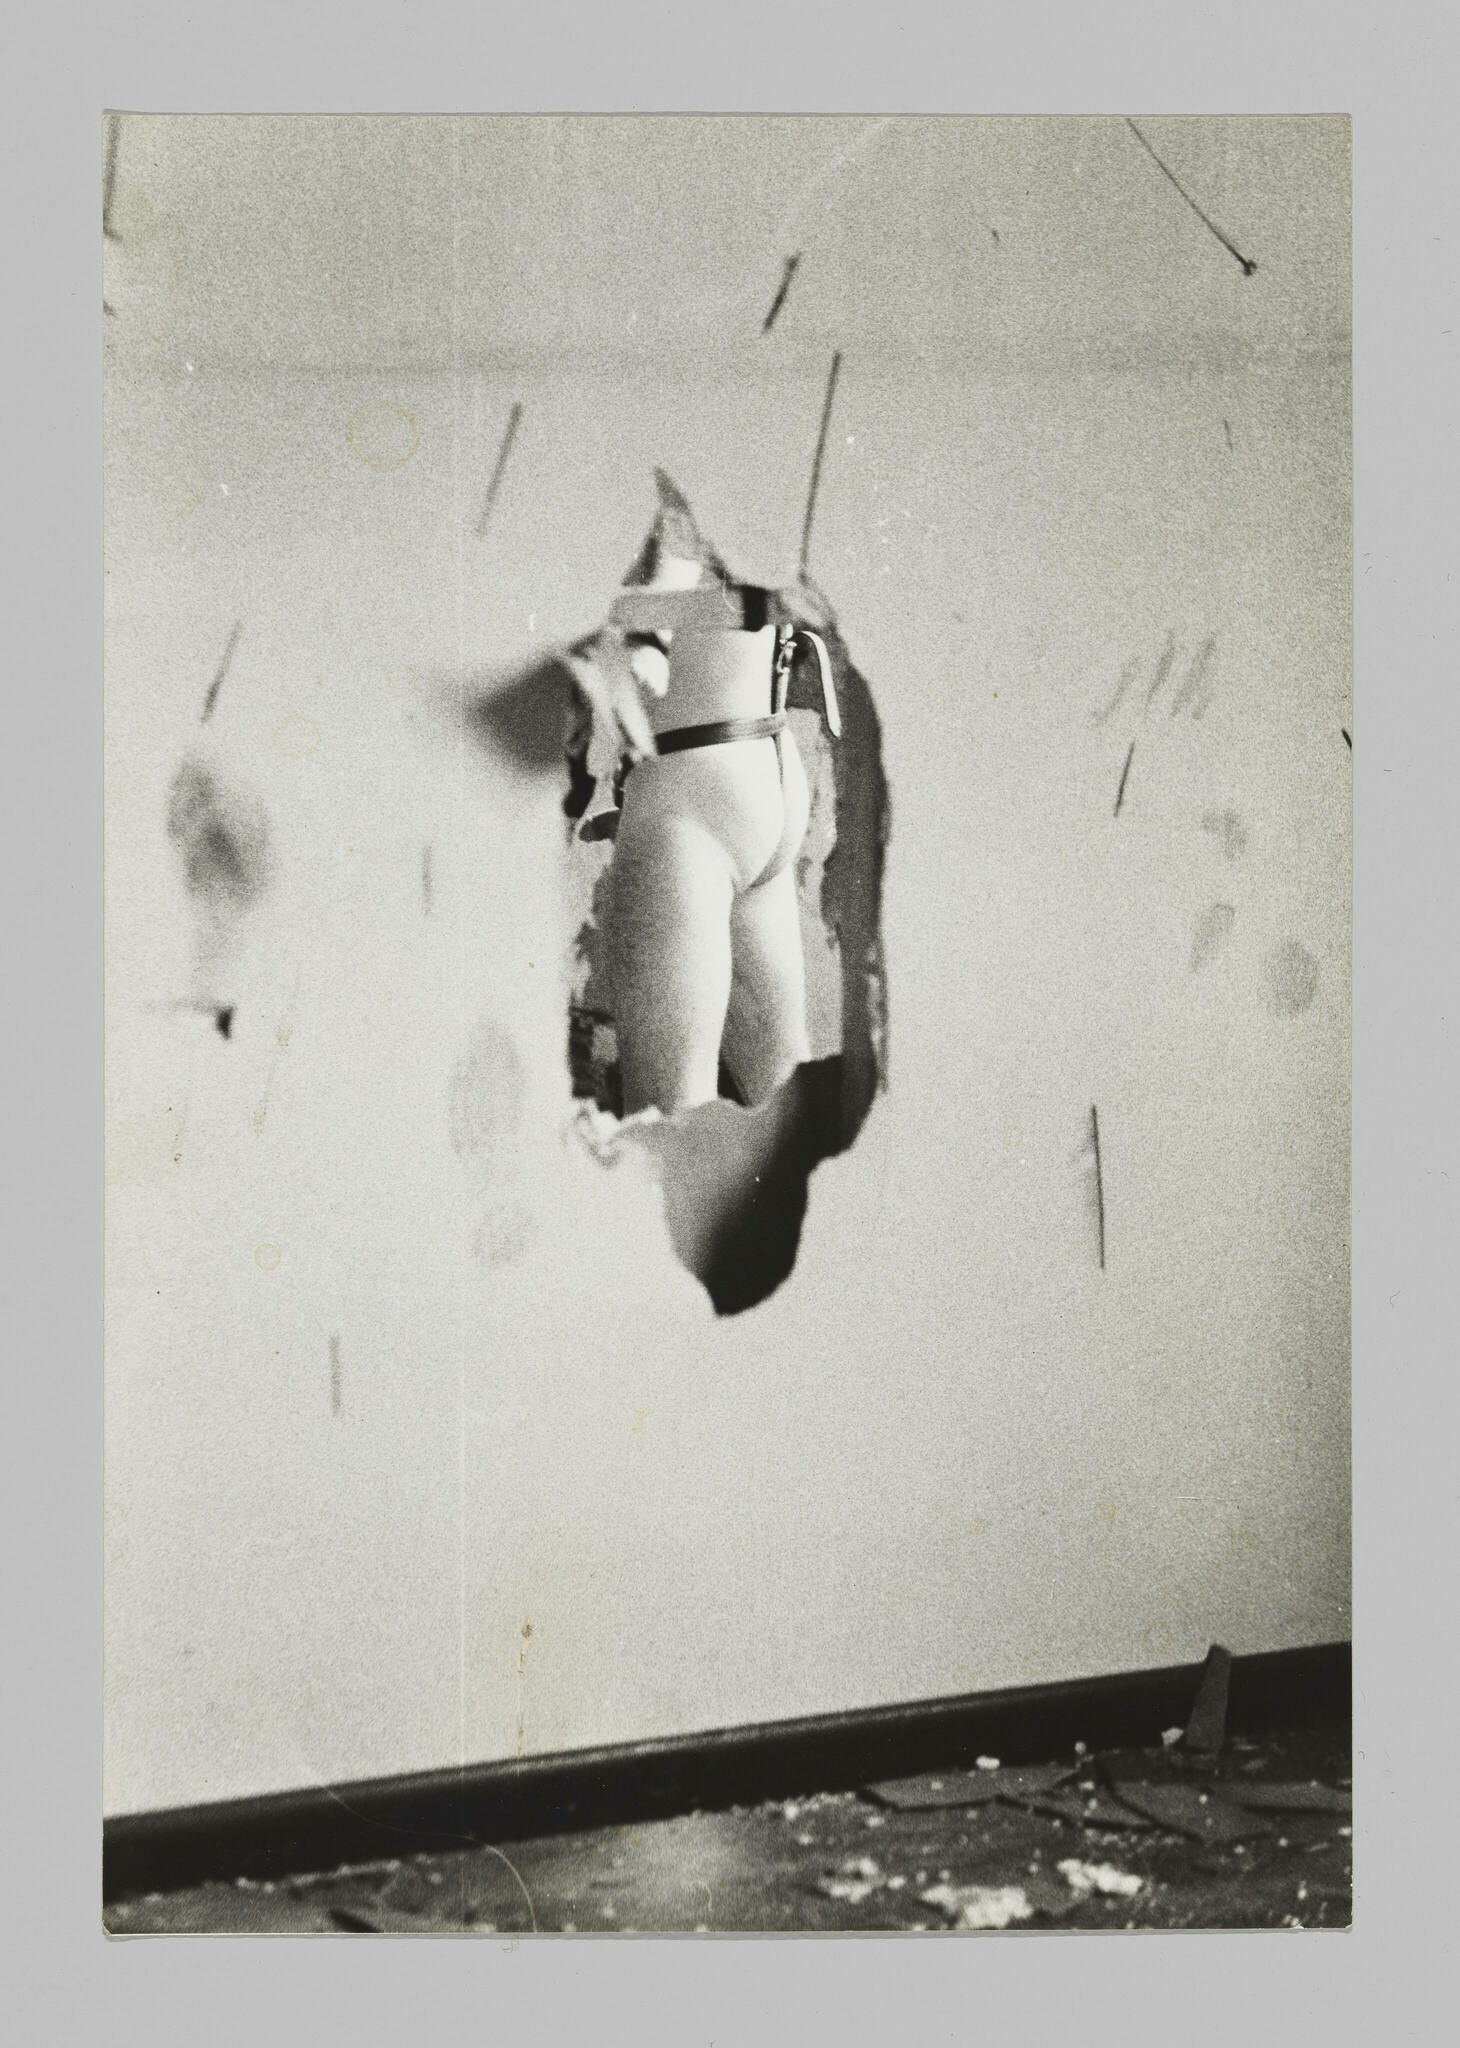 A hole in a dilapidated wall reveals a nude man's lower back, upper legs, and semi-erect penis from a three-quarter rear view.